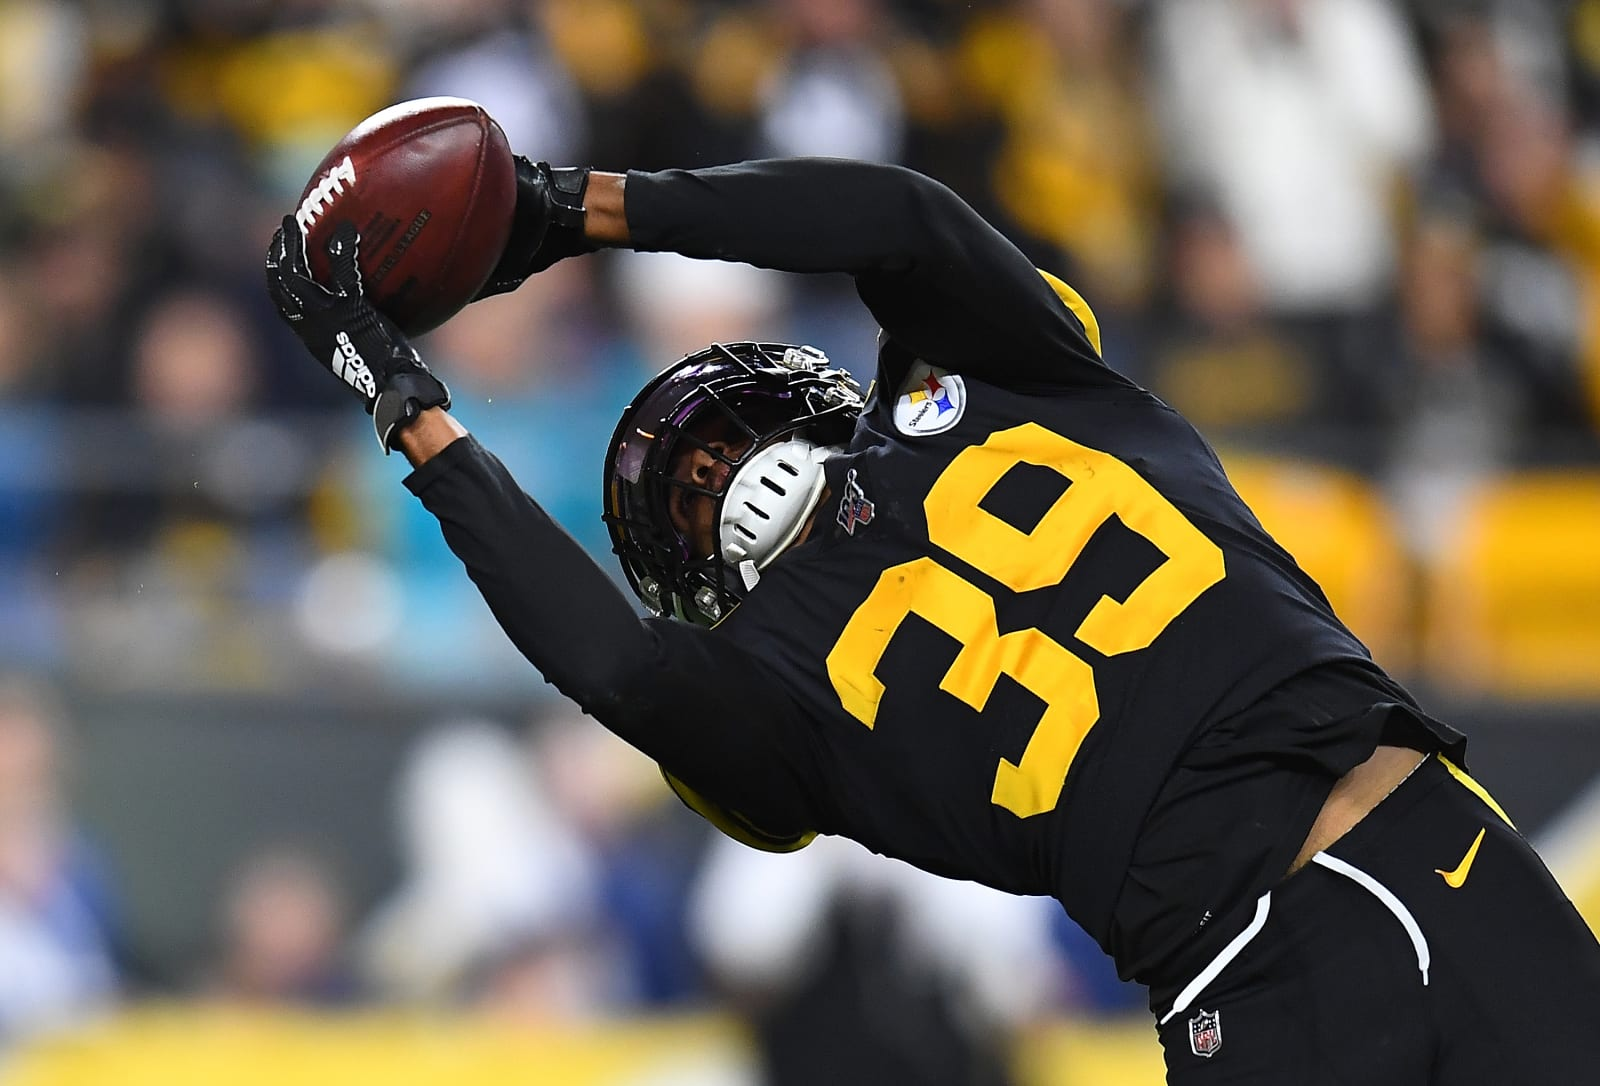 5 safest Pittsburgh Steelers jerseys to purchase in 2021 - Page 2